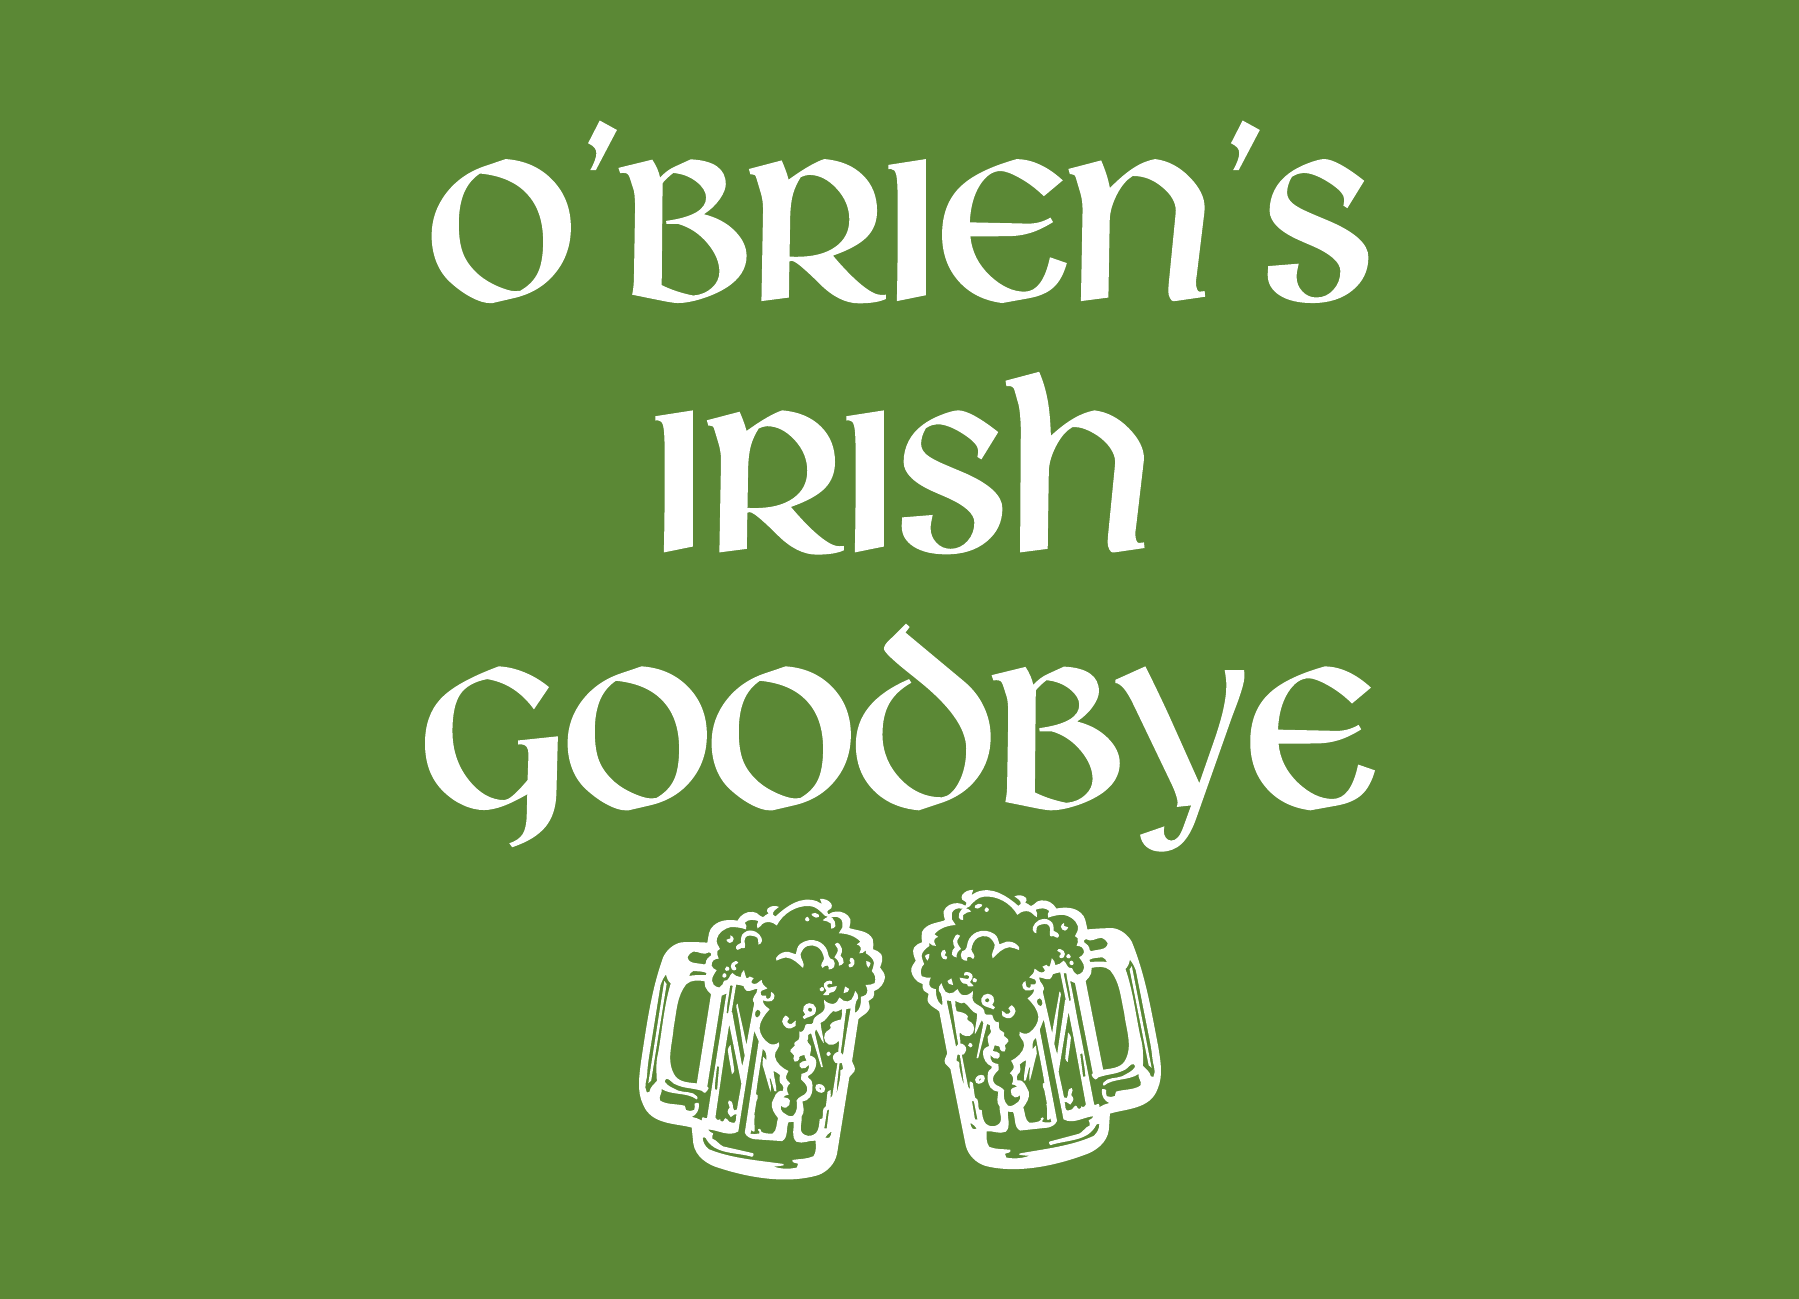 O'Brien's Irish Goodbye